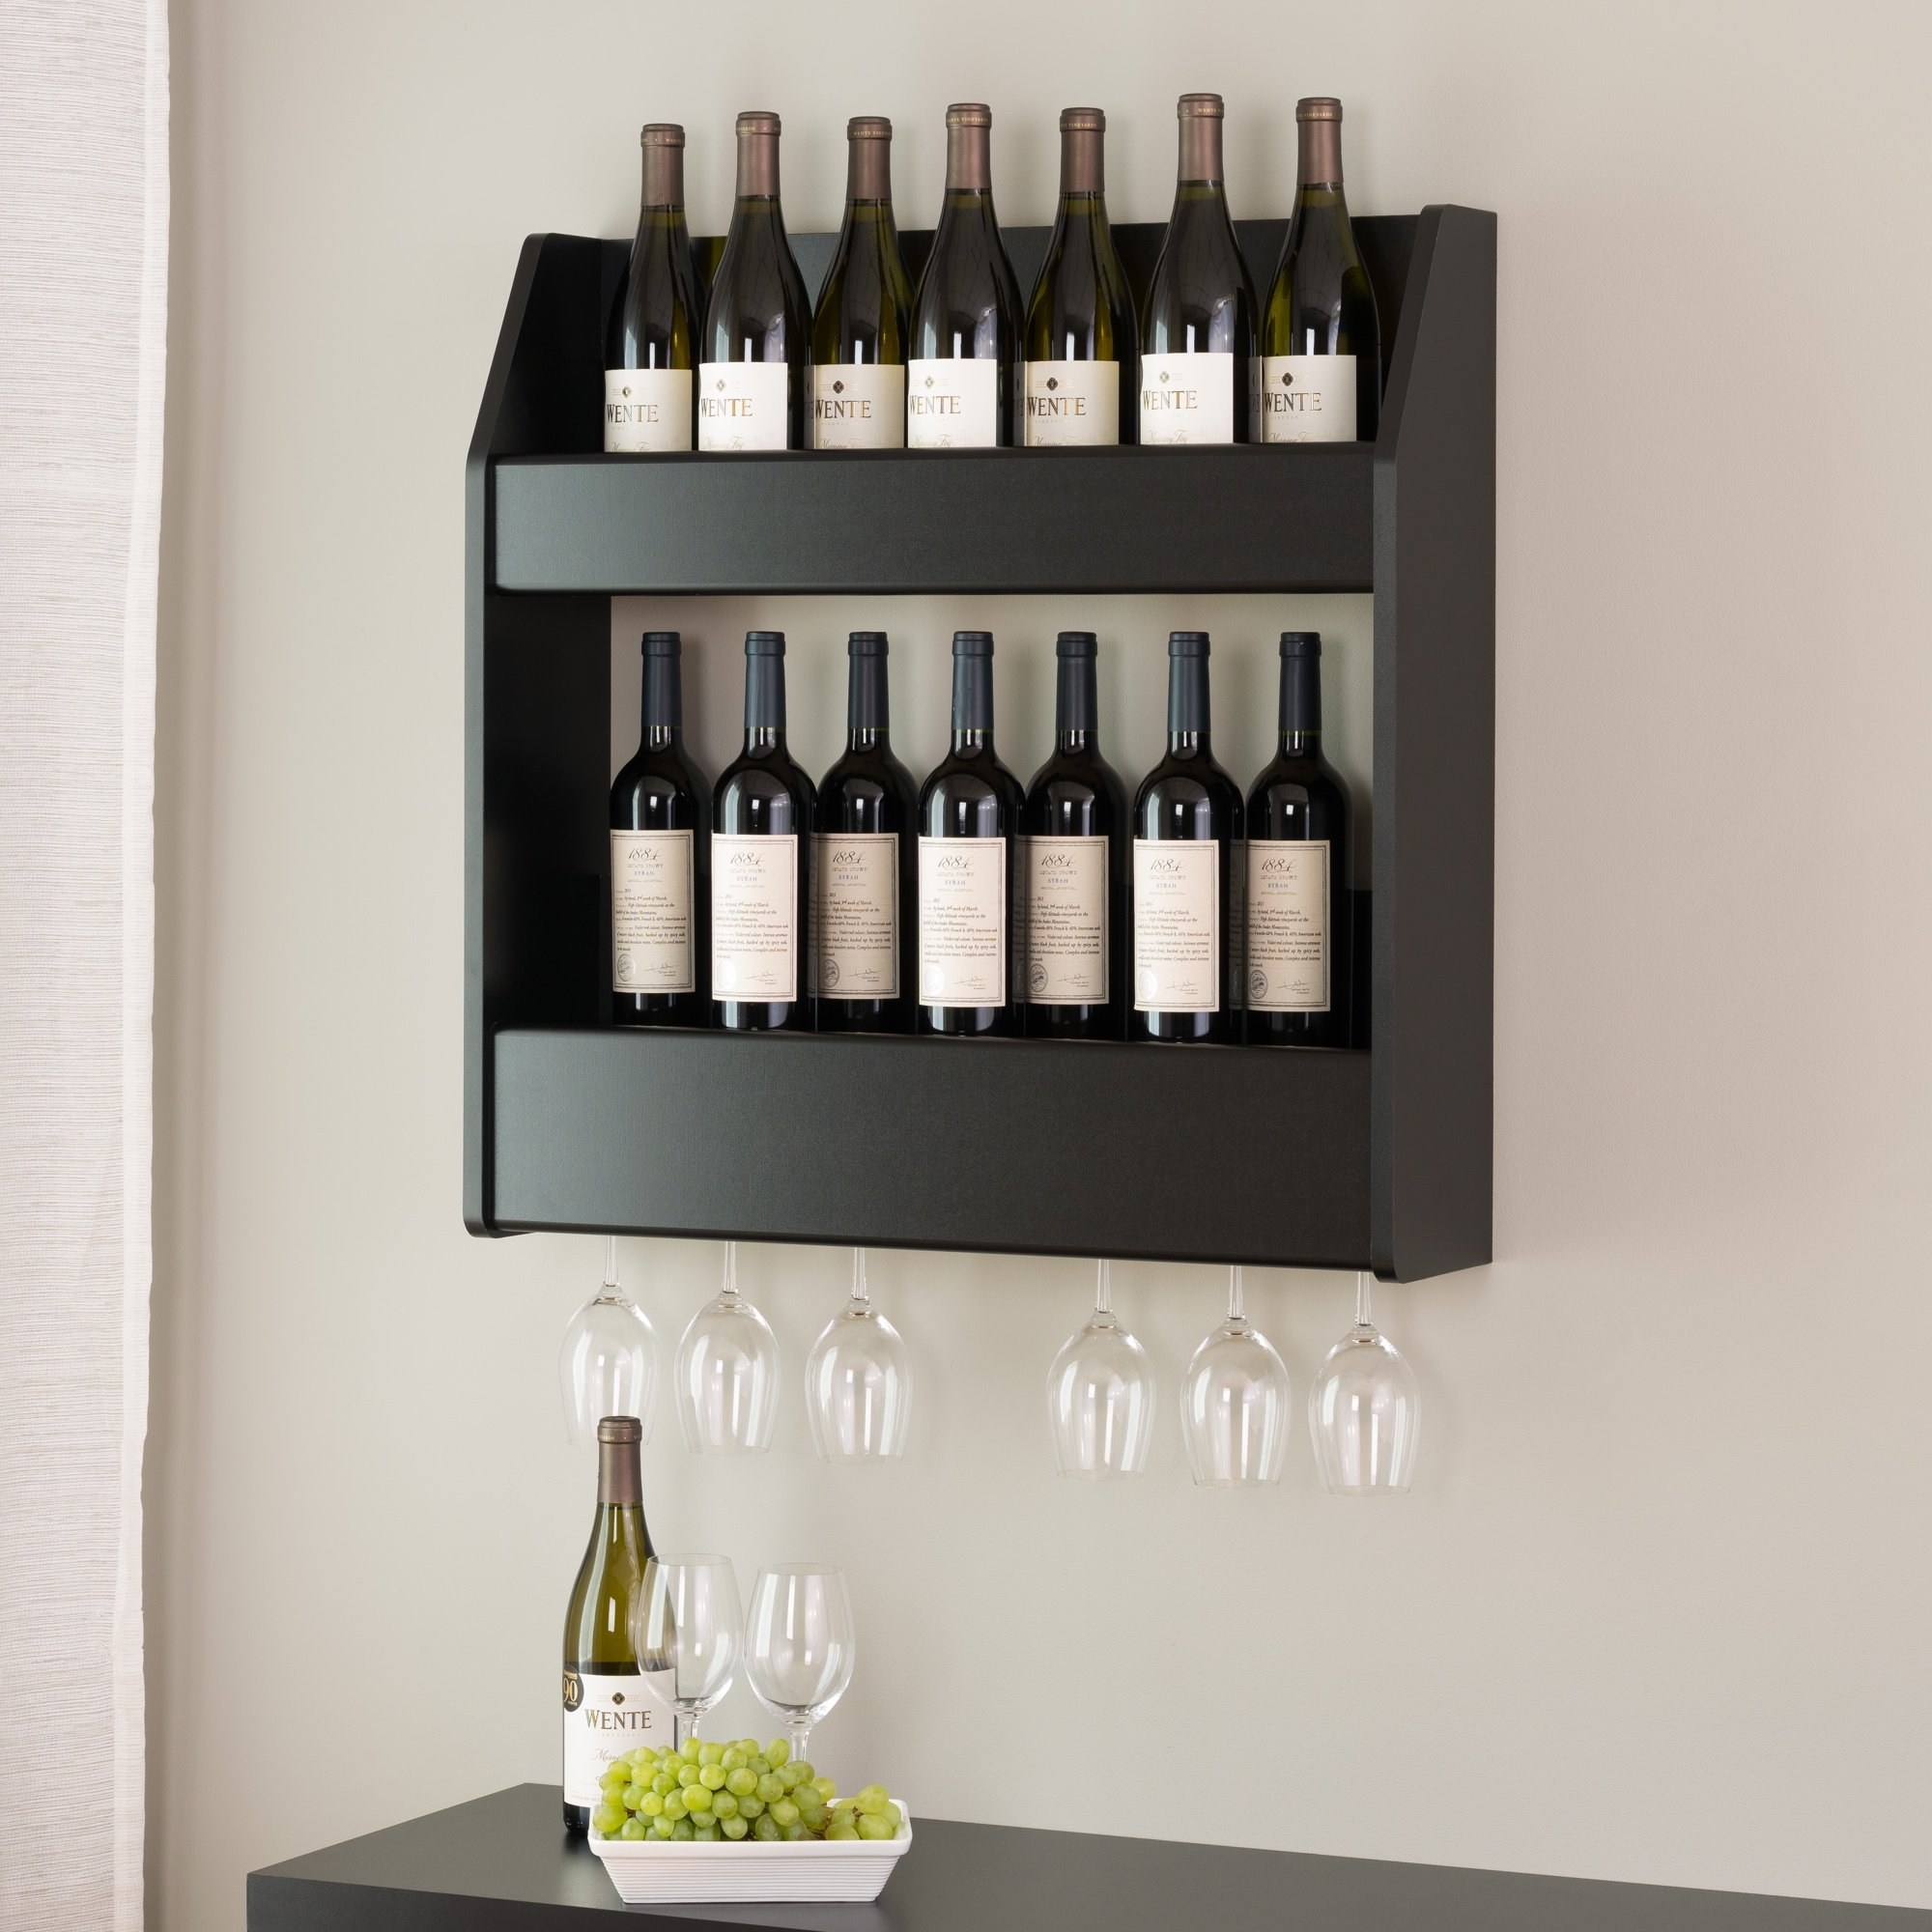 the wine rack on the wall